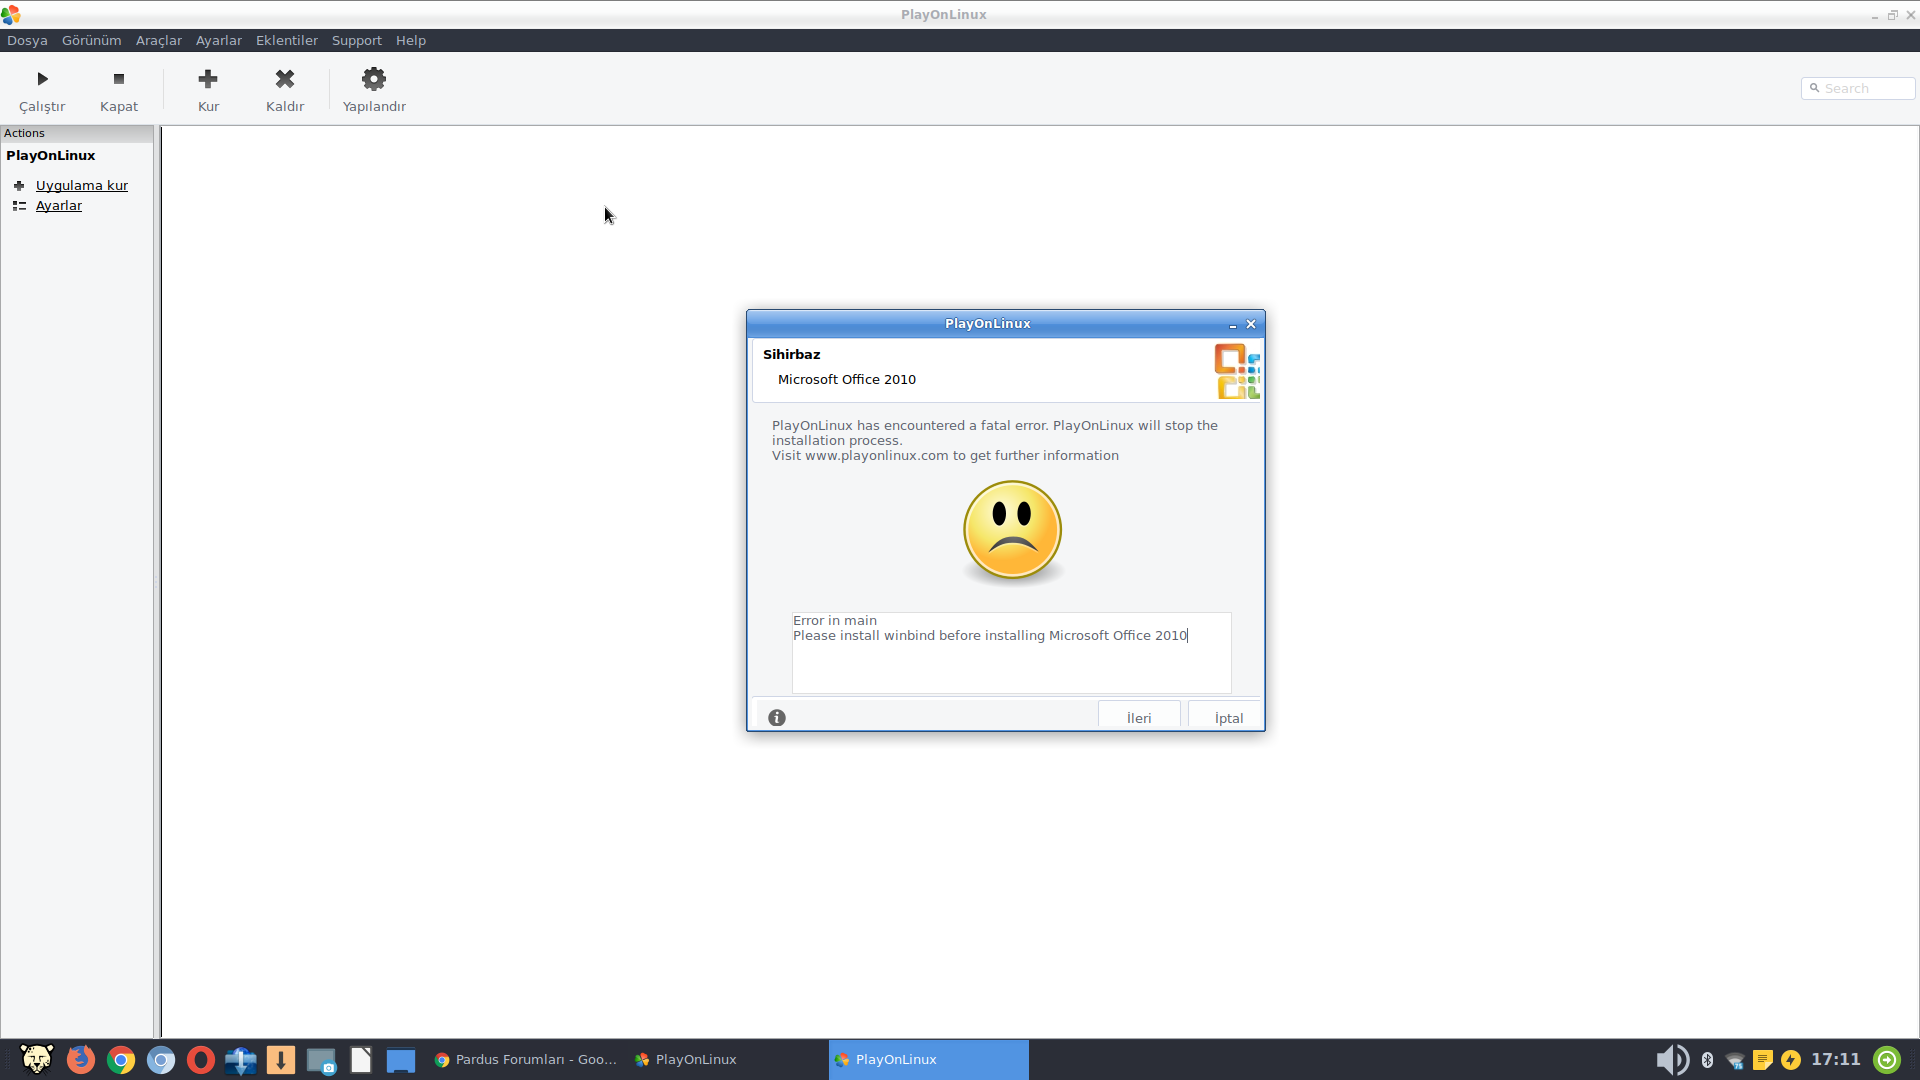 please install winbind before installing microsoft office 2010 playonlinux